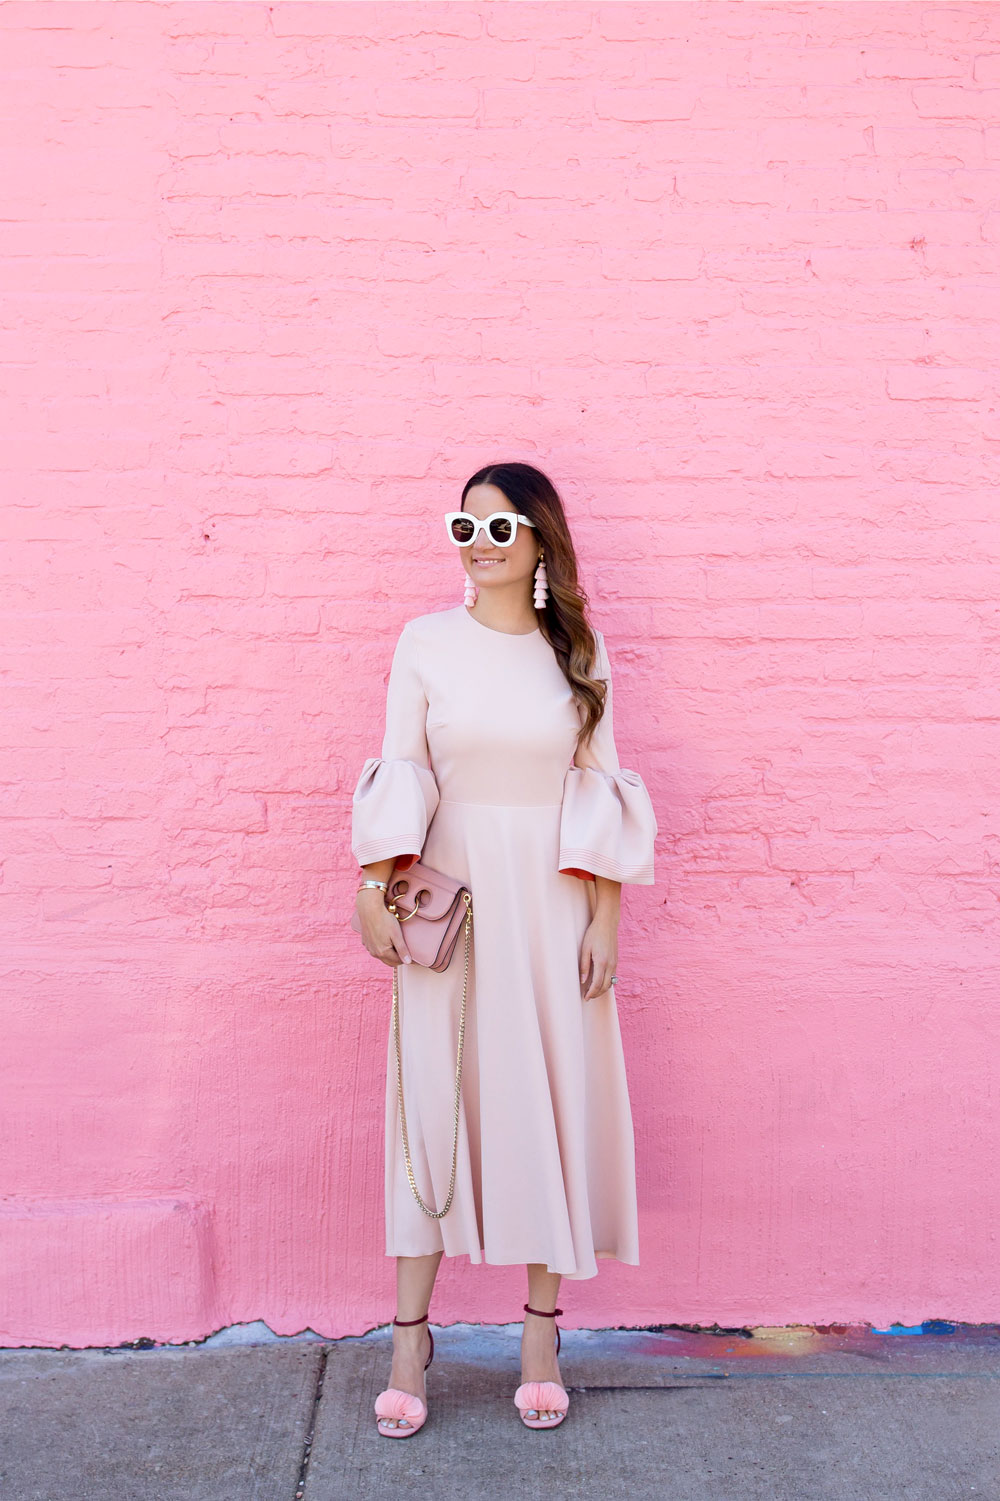 Chicago Pink Wall